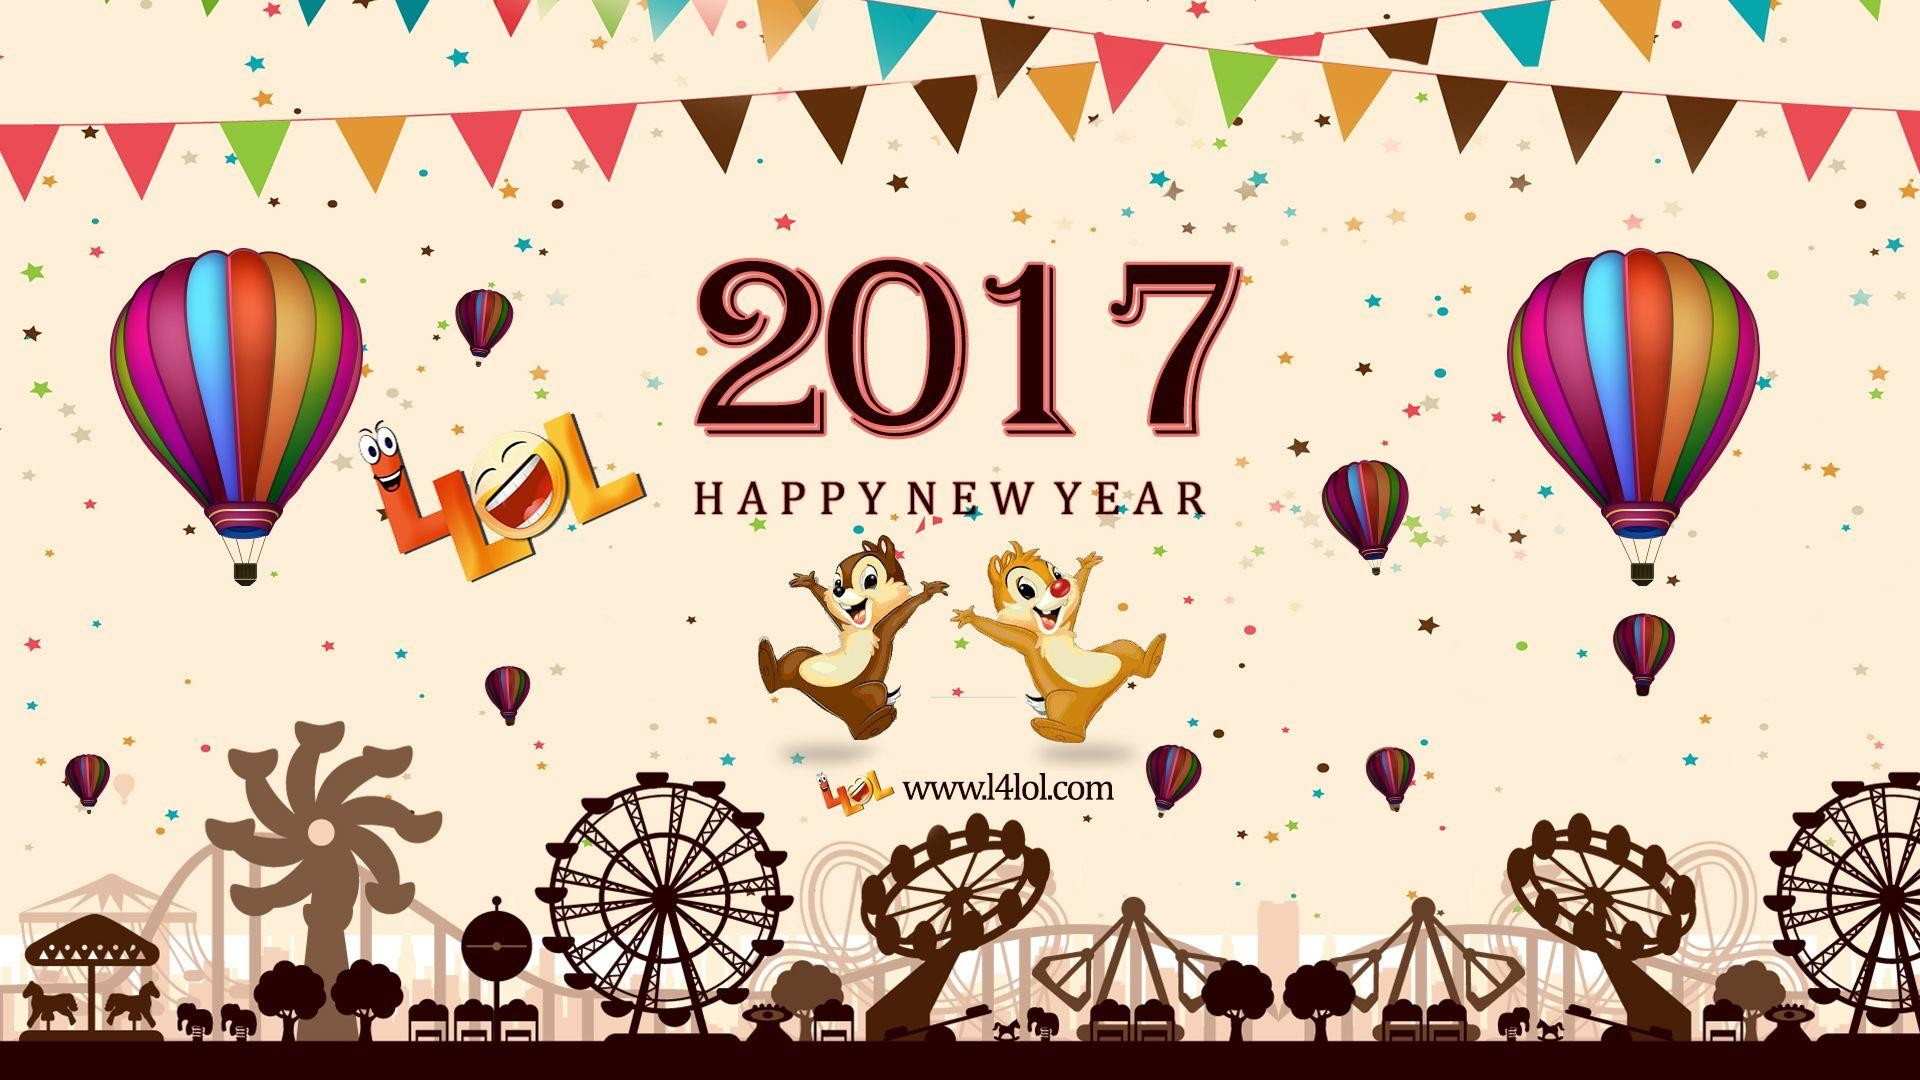 Happy New Year 2017 Images, HD Wallpapers, Pictures – Live Trendz